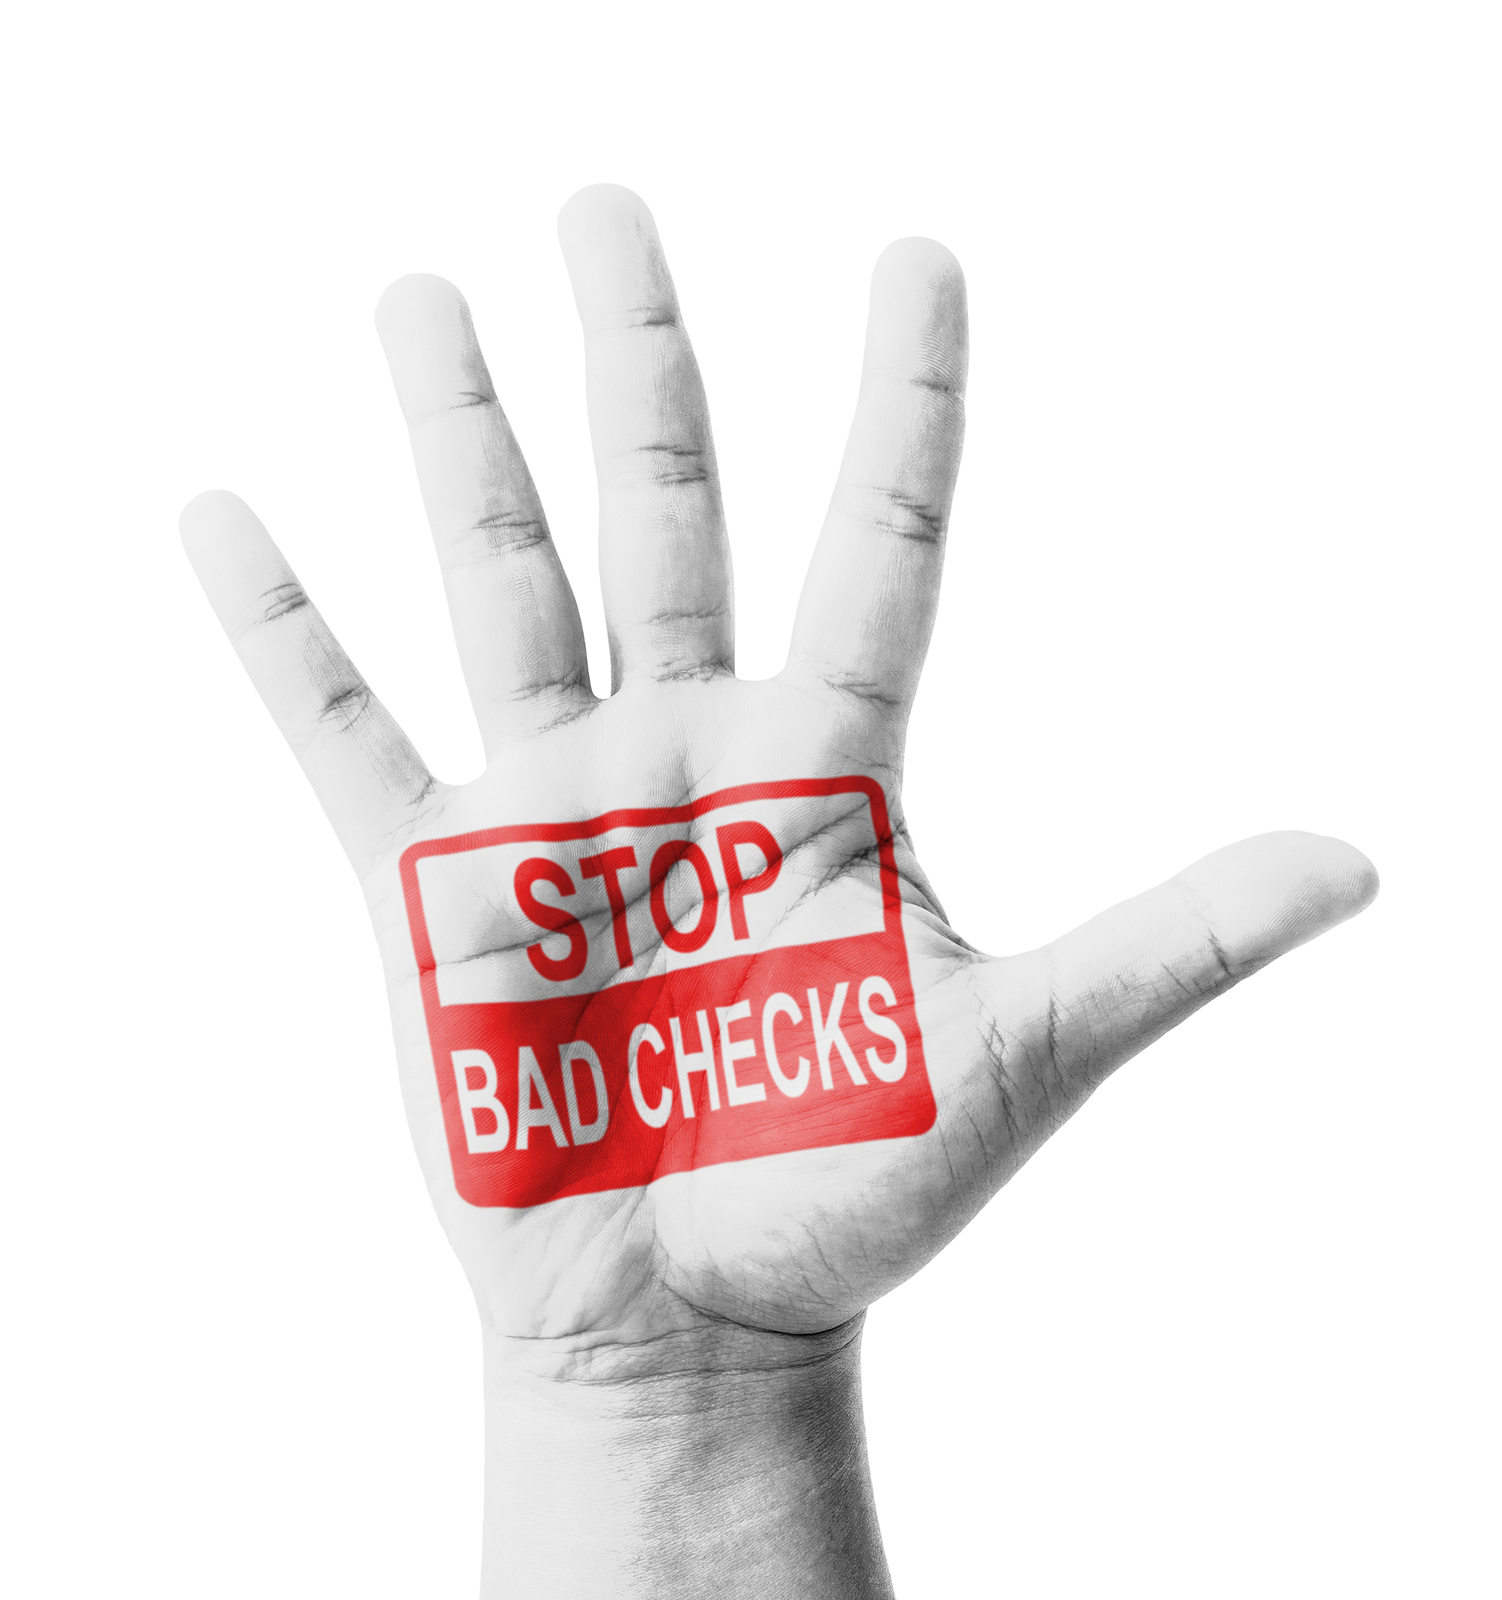 bigstock-Open-Hand-Raised-Stop-Bad-Che-64049977.jpg